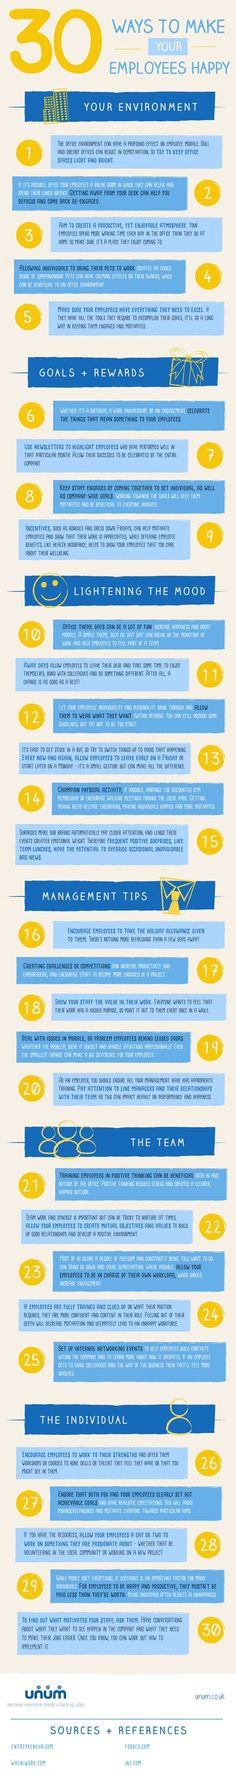 30 simple ways to make your employees happier  Read more: http://www.businessinsider.com/simple-ways-to-make-your-employees-happy-2015-4#ixzz3XyeRLE8A